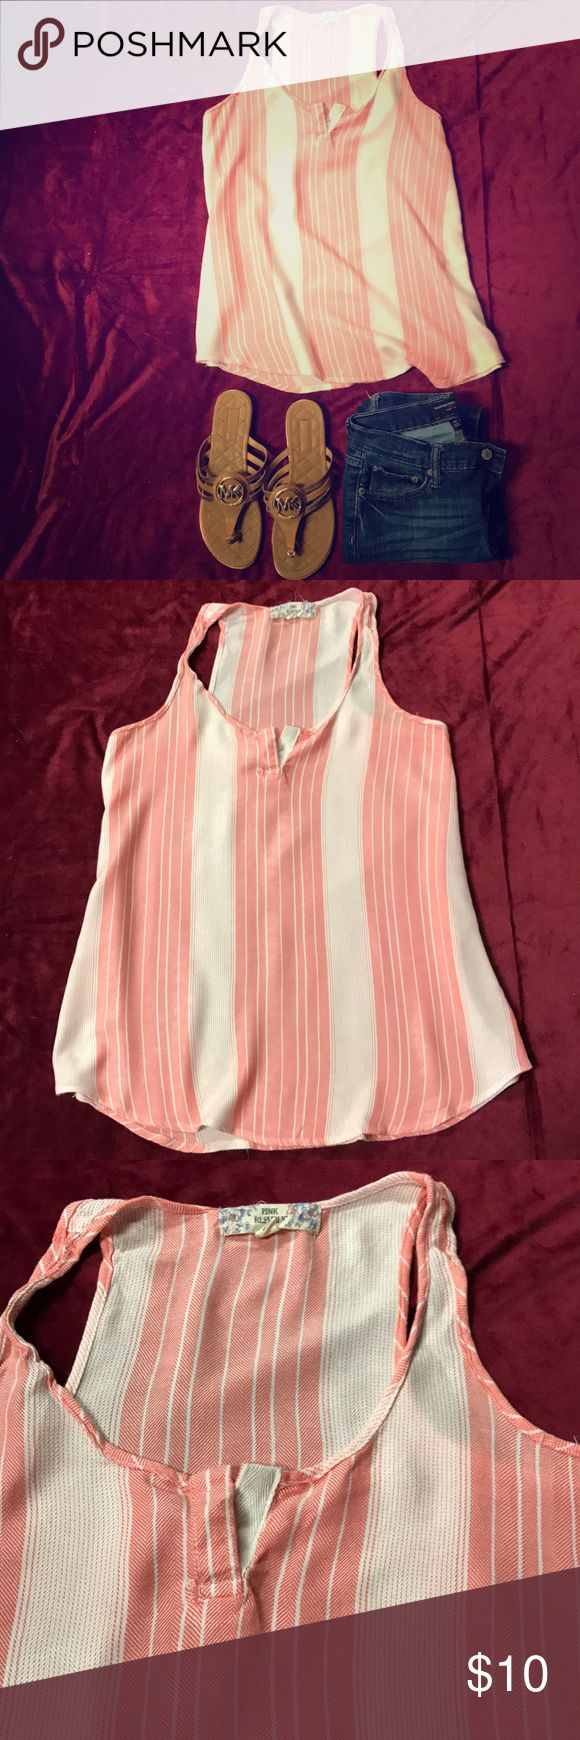 **PINK REPUBLIC** Red/White Striped Tunic Top **PINK REPUBLIC** Red/White striped sleeveless tunic top, Size S. great condition! Perfect for summer days! Pink Republic Tops Tunics